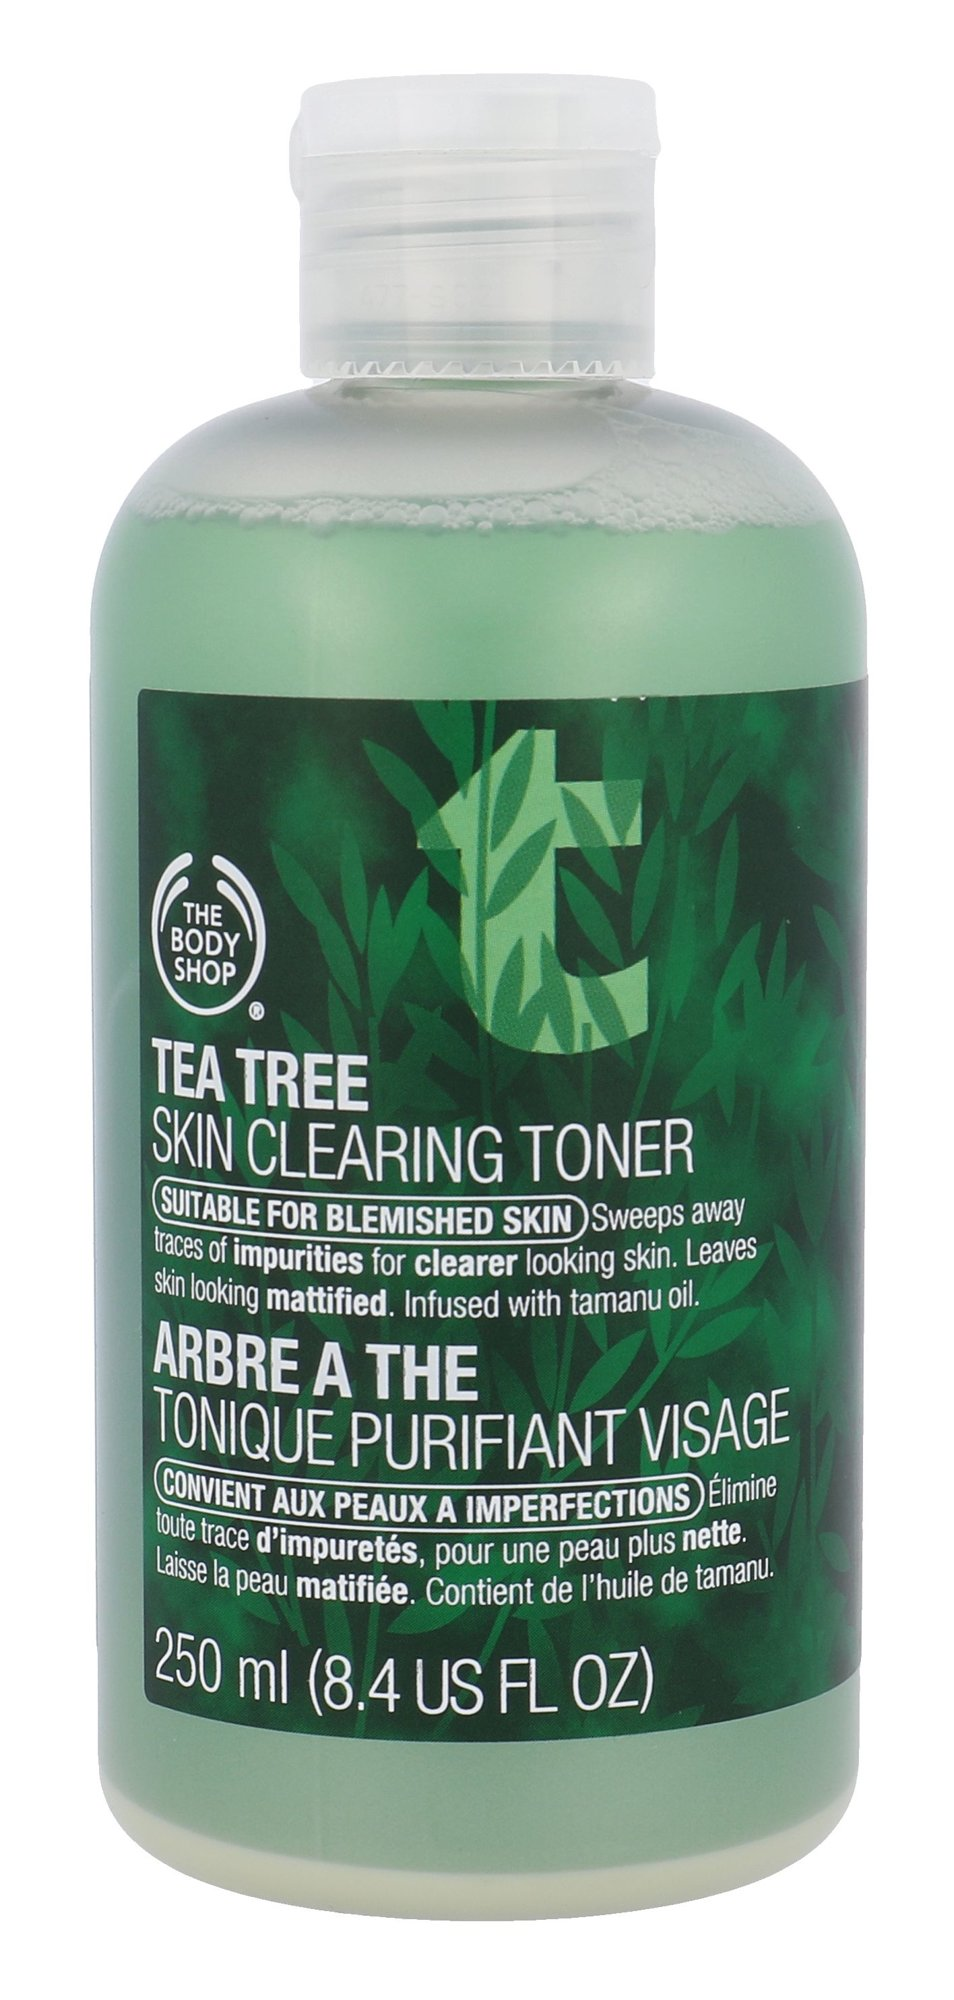 The Body Shop Tea Tree Cosmetic 250ml  Blemish Fade